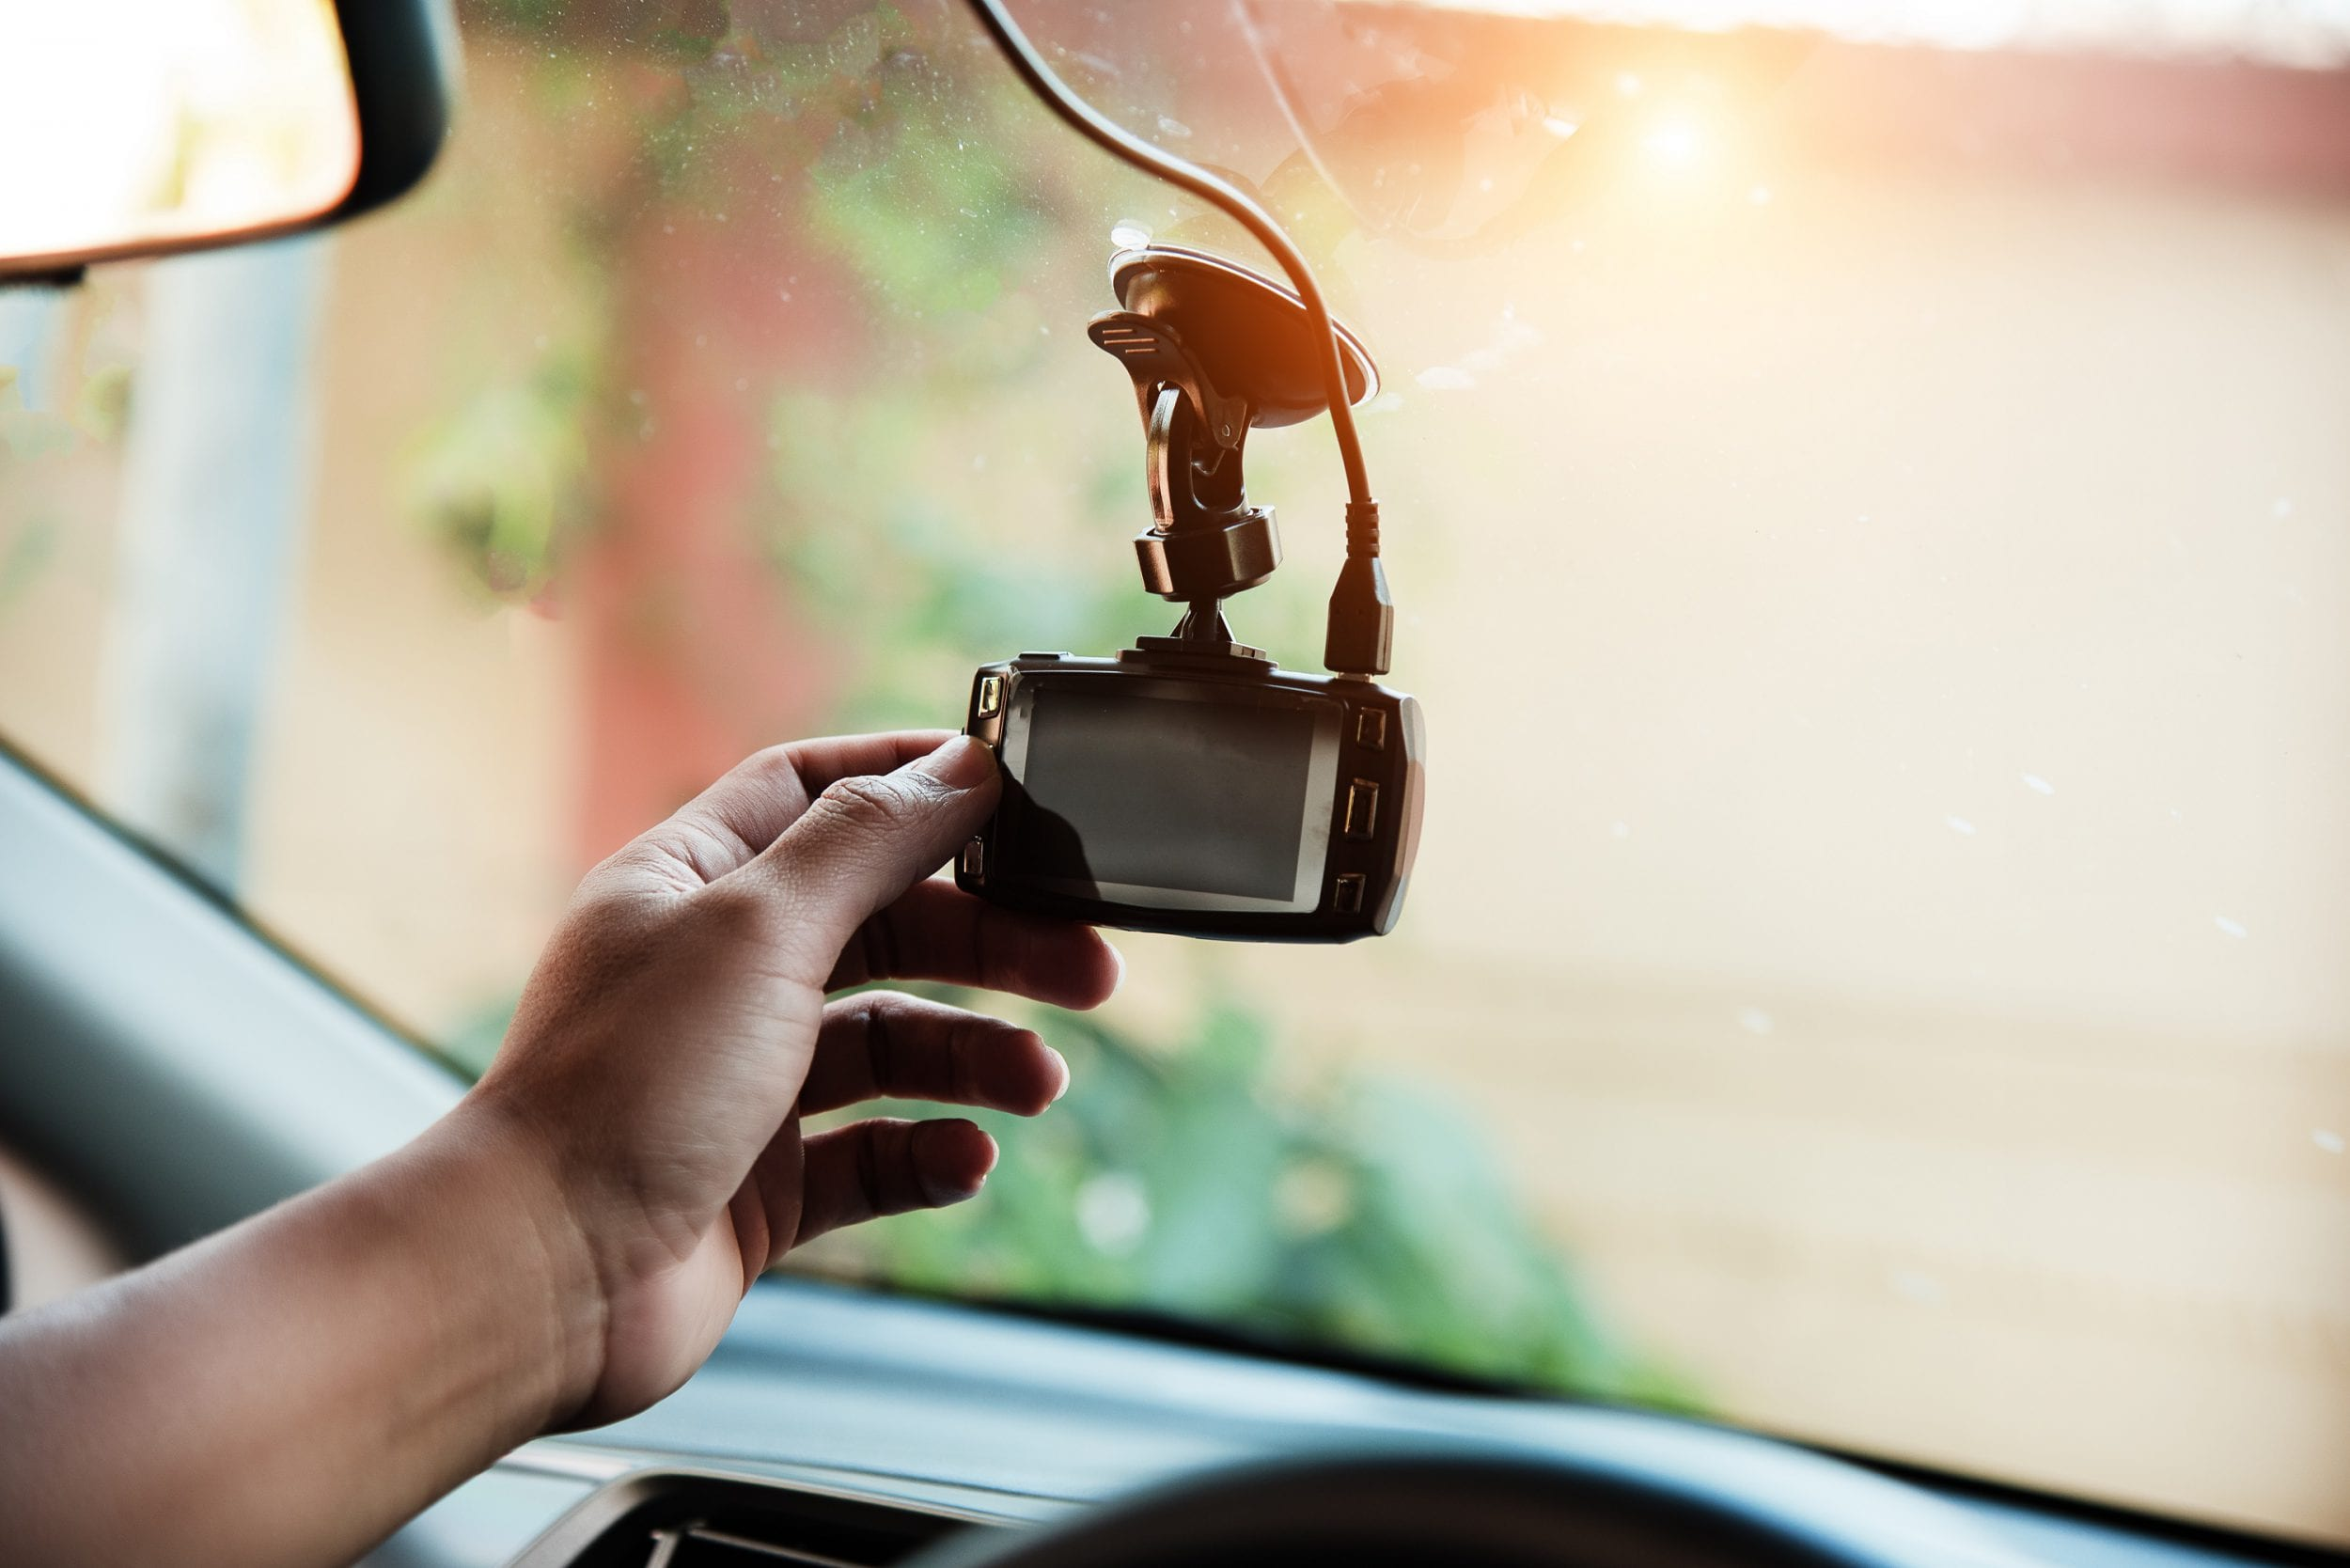 Person setting up dash cam car technology